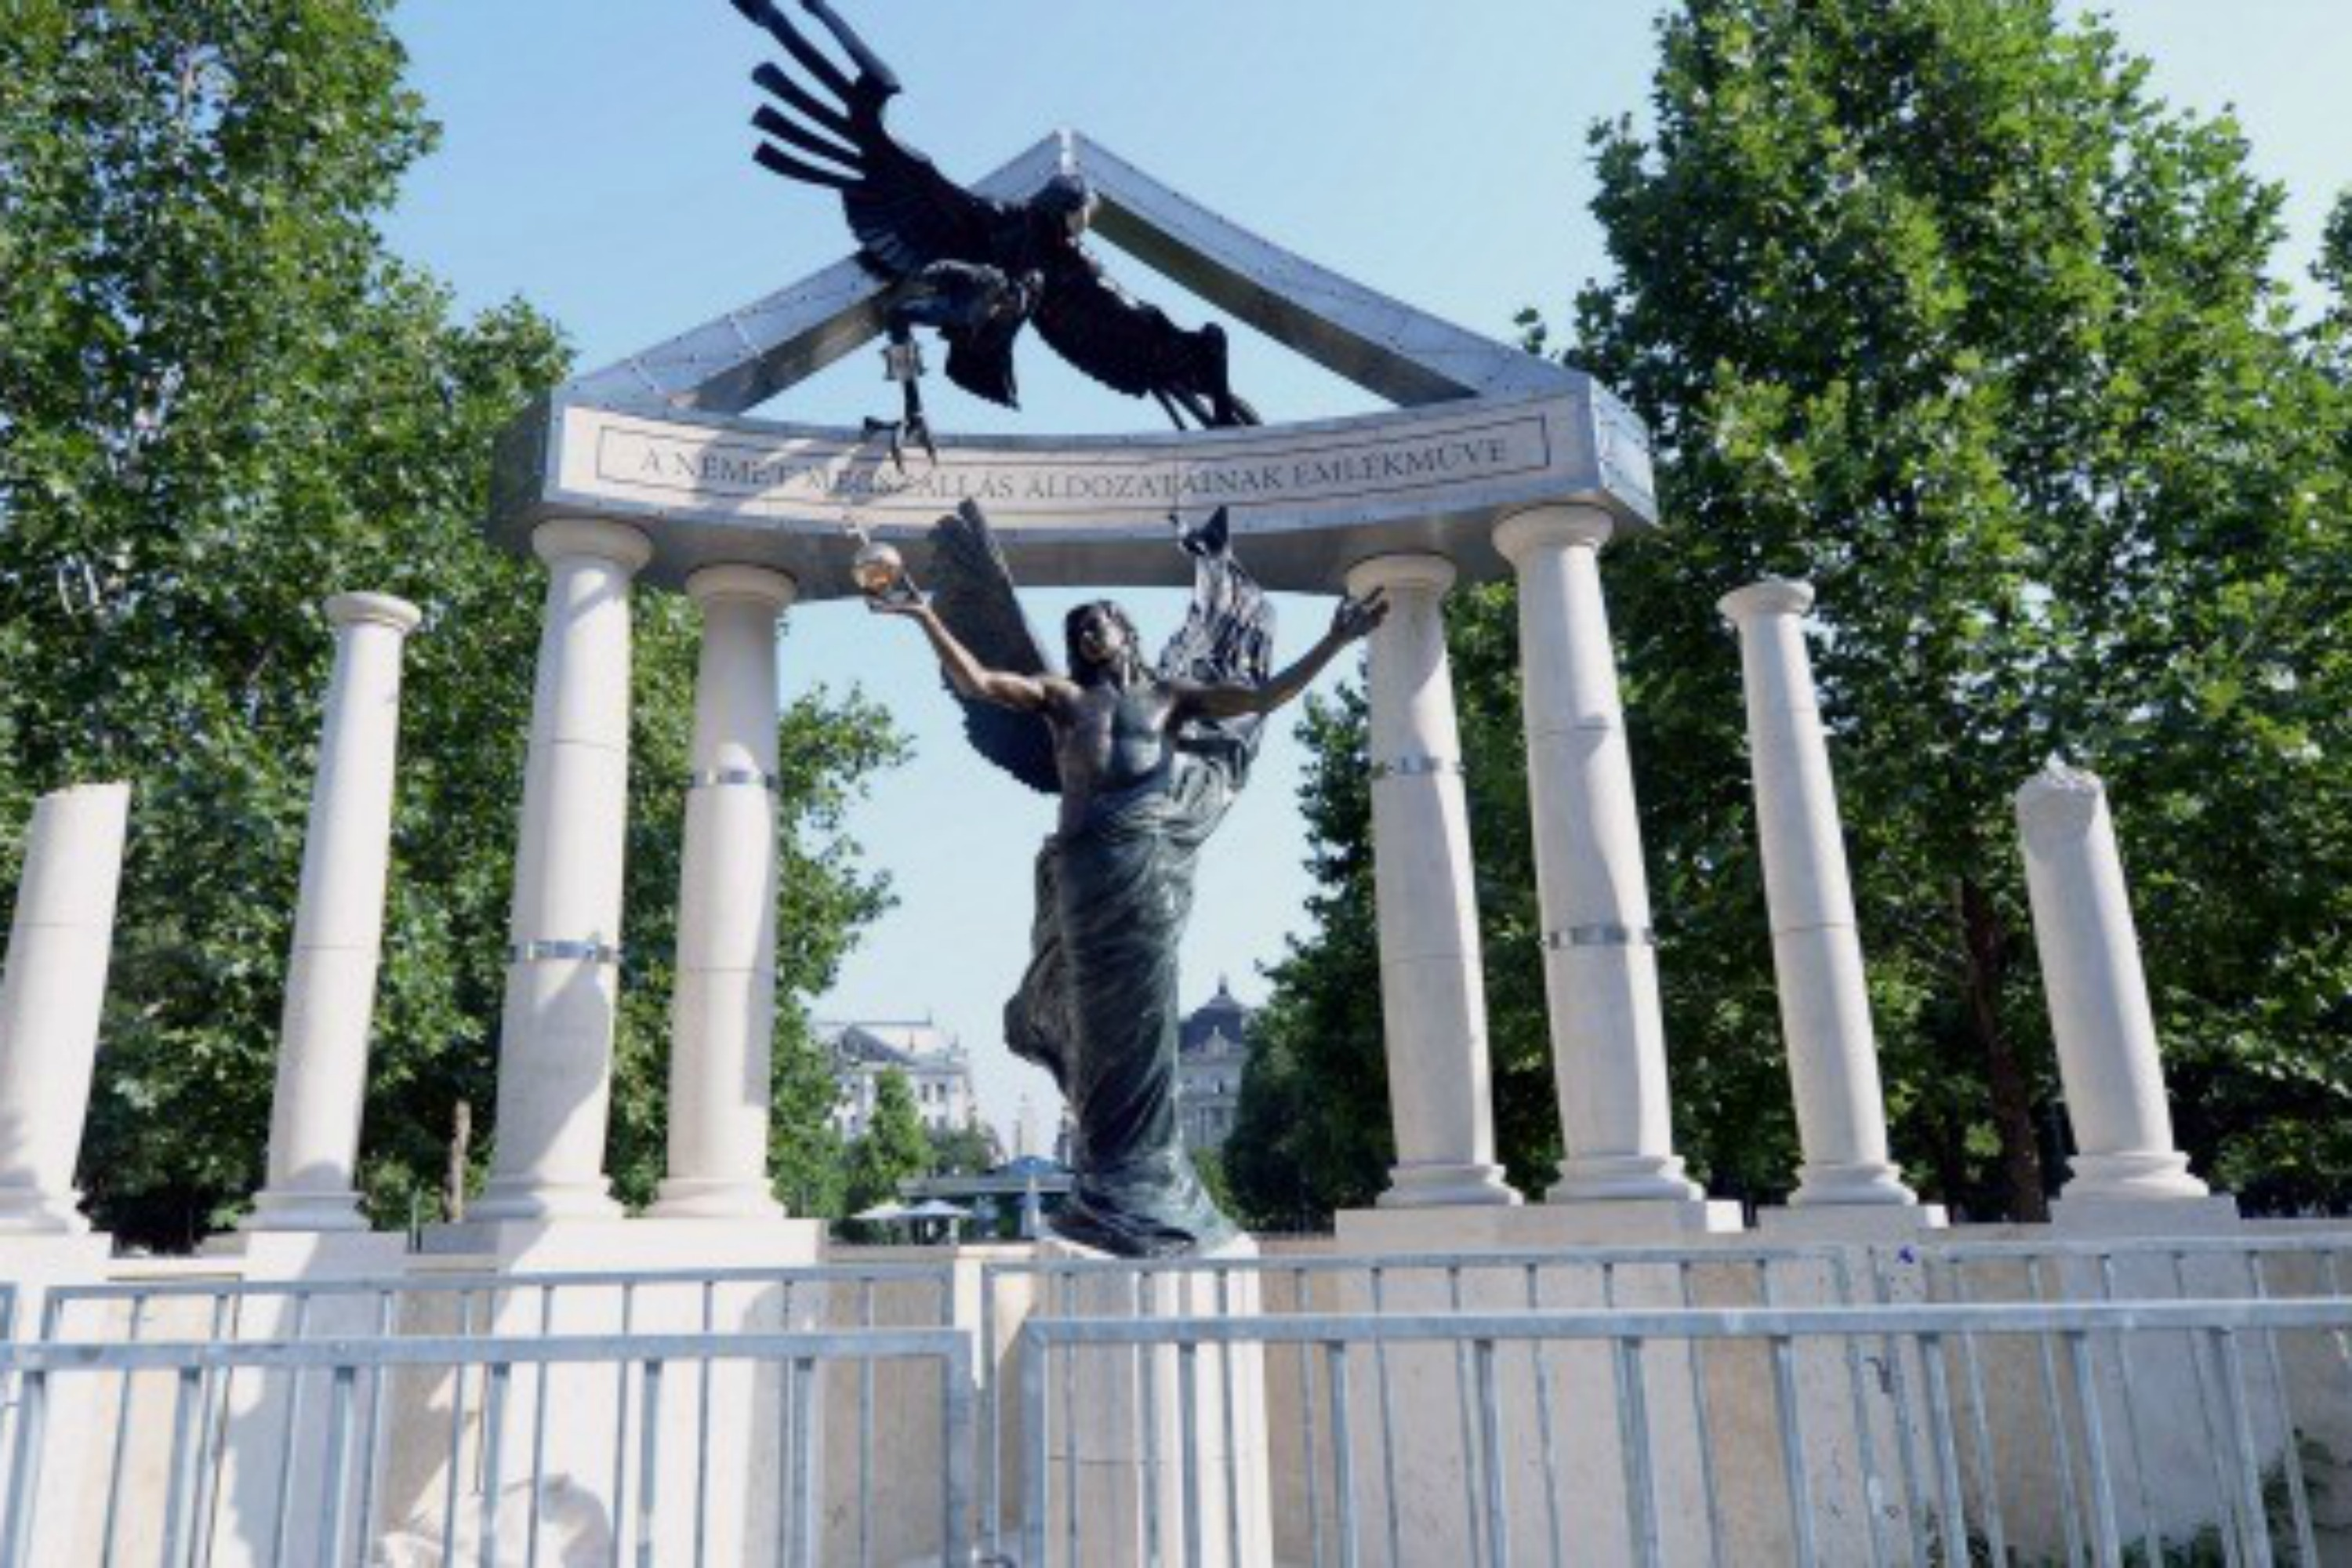 Monument of World War II. Monuments to historical personalities and events 75